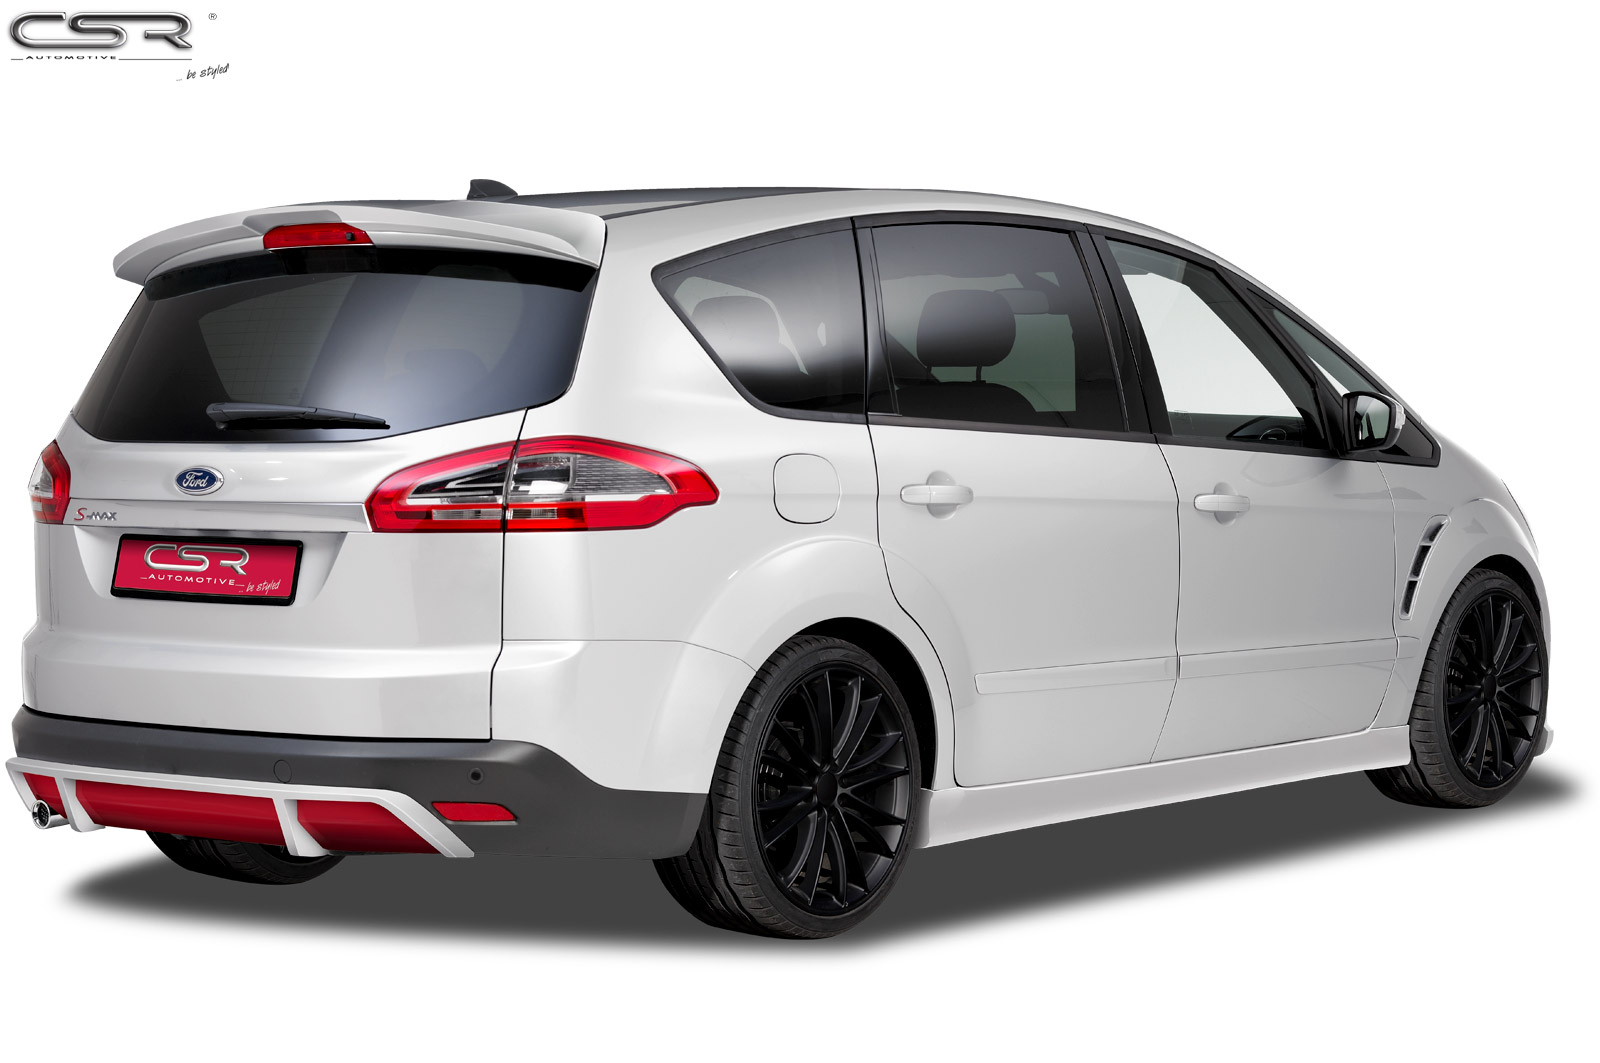 exteri r ford s max bo n prahy ss398 csr tuning. Black Bedroom Furniture Sets. Home Design Ideas